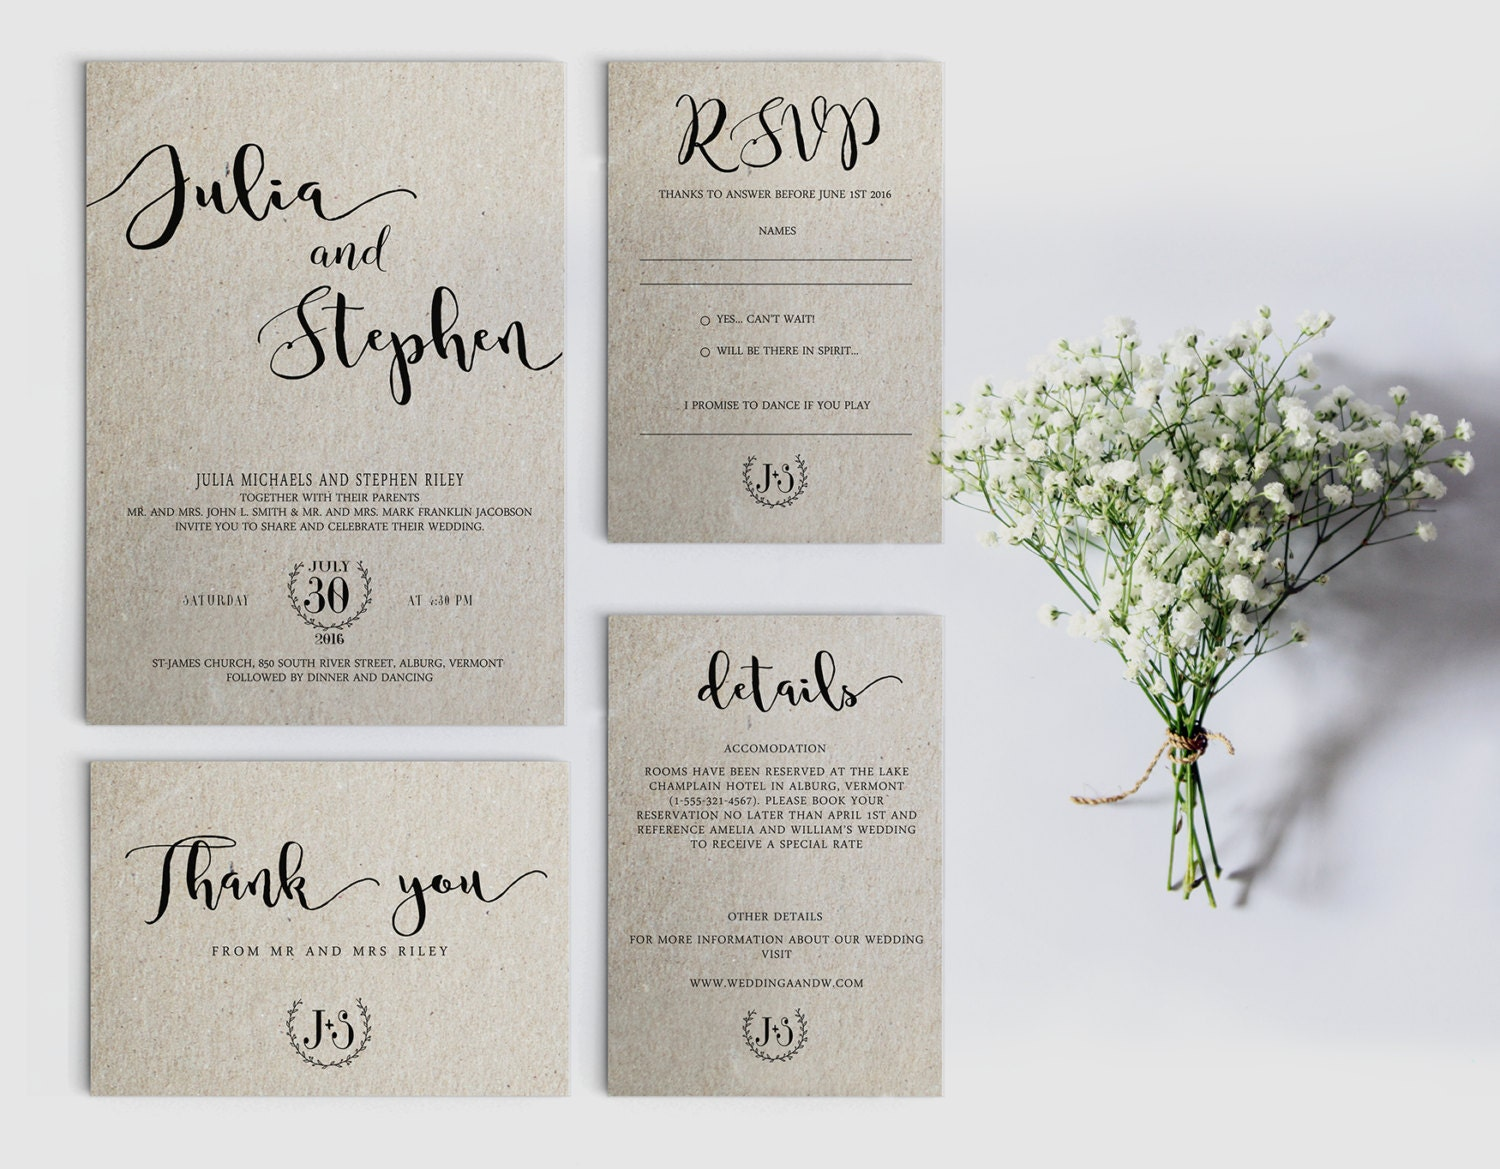 Printable Wedding Invitation Sets: Digital Wedding Invitation Printable Wedding Invitation Set